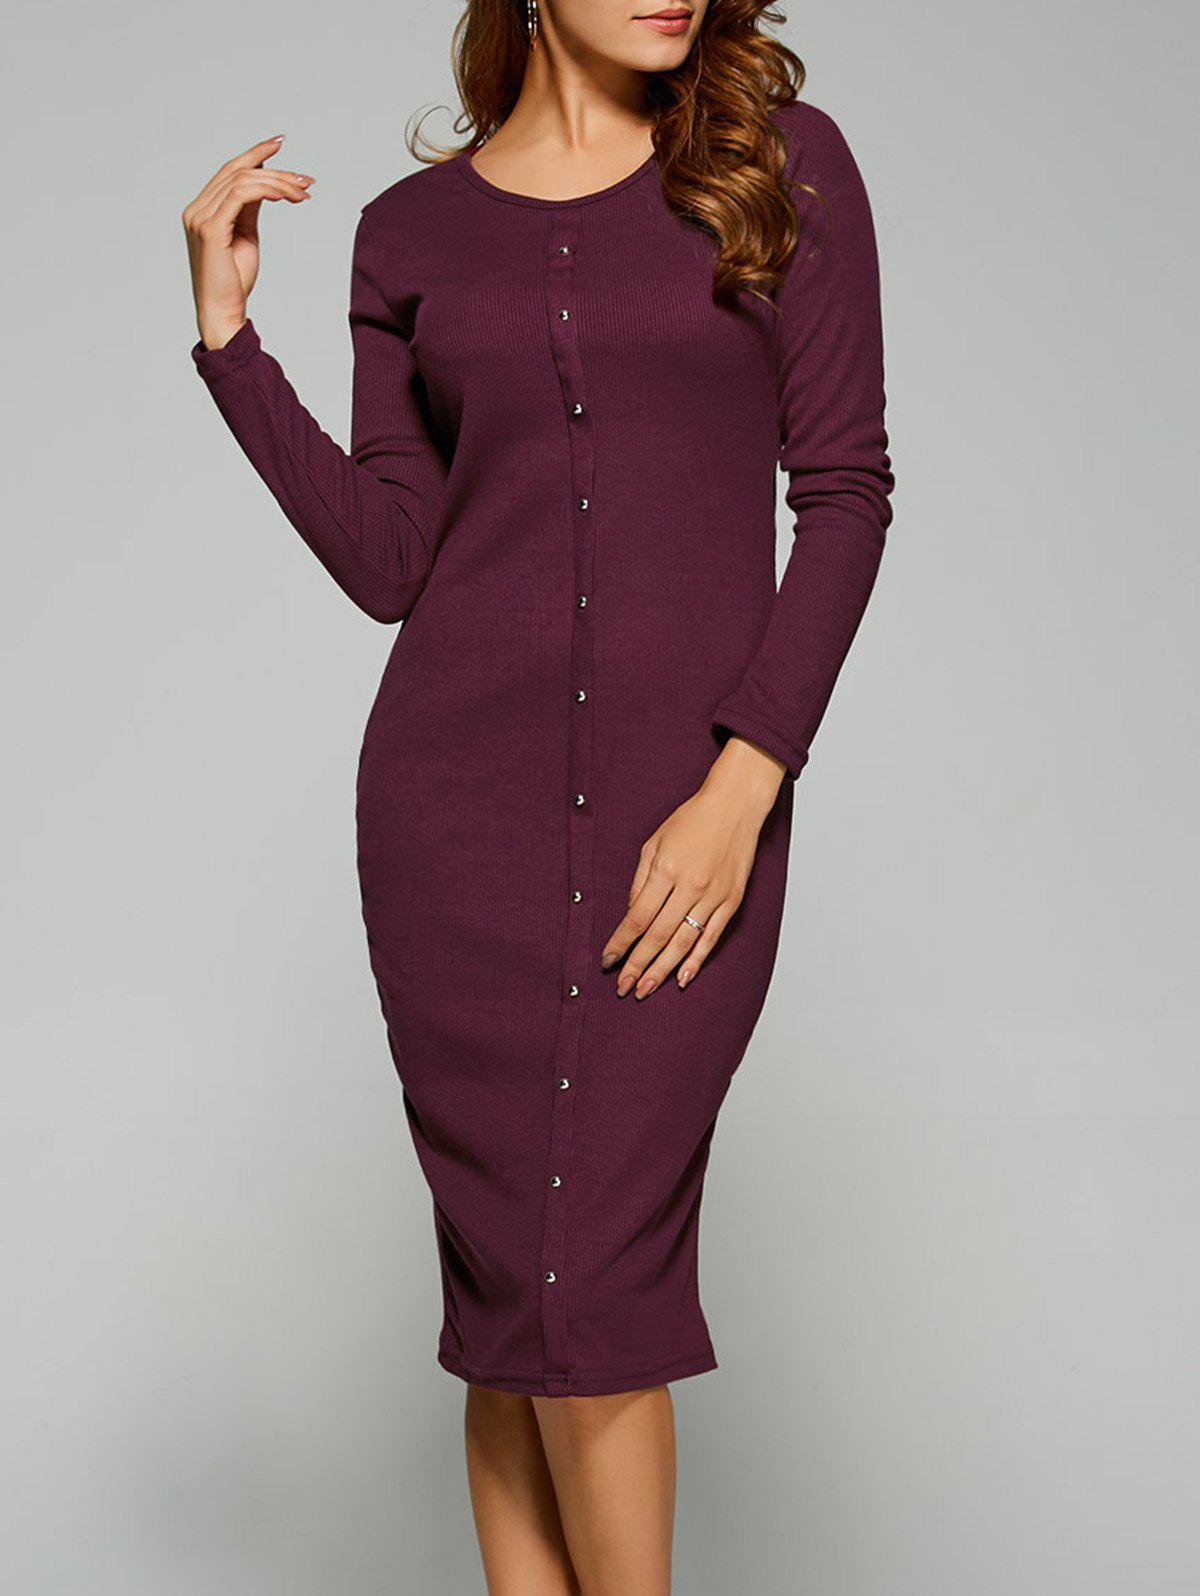 Long Sleeve Button Up Knit Sheath Dress - BORDEAUX XL